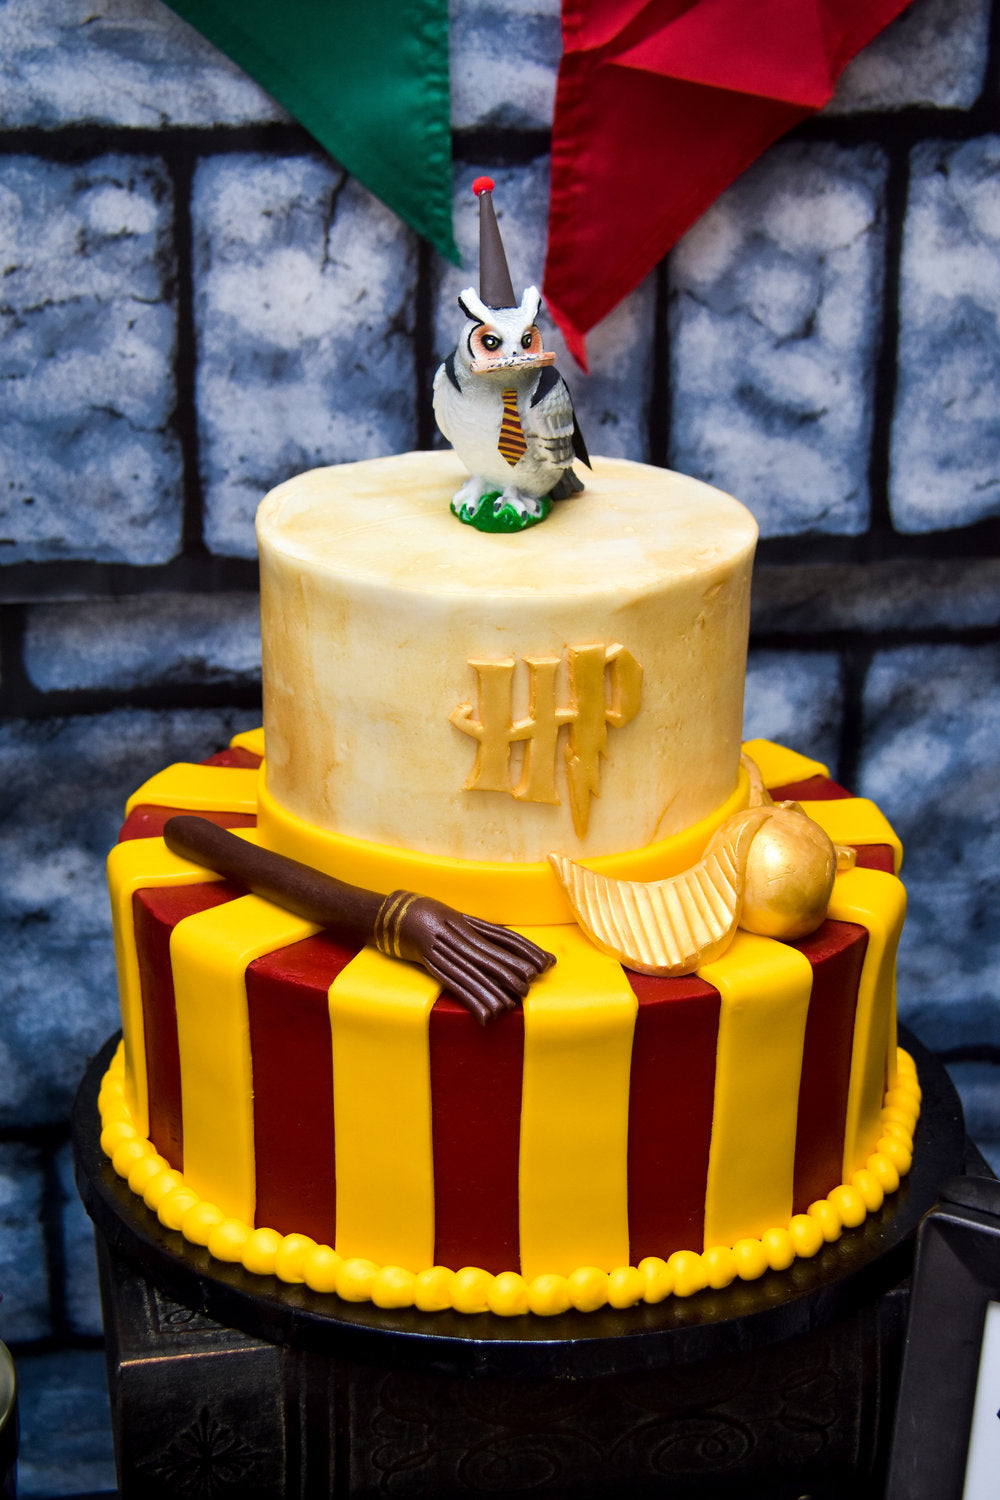 Harry Potter scarlet and gold color Gryffindor birthday cake with owl cake topper